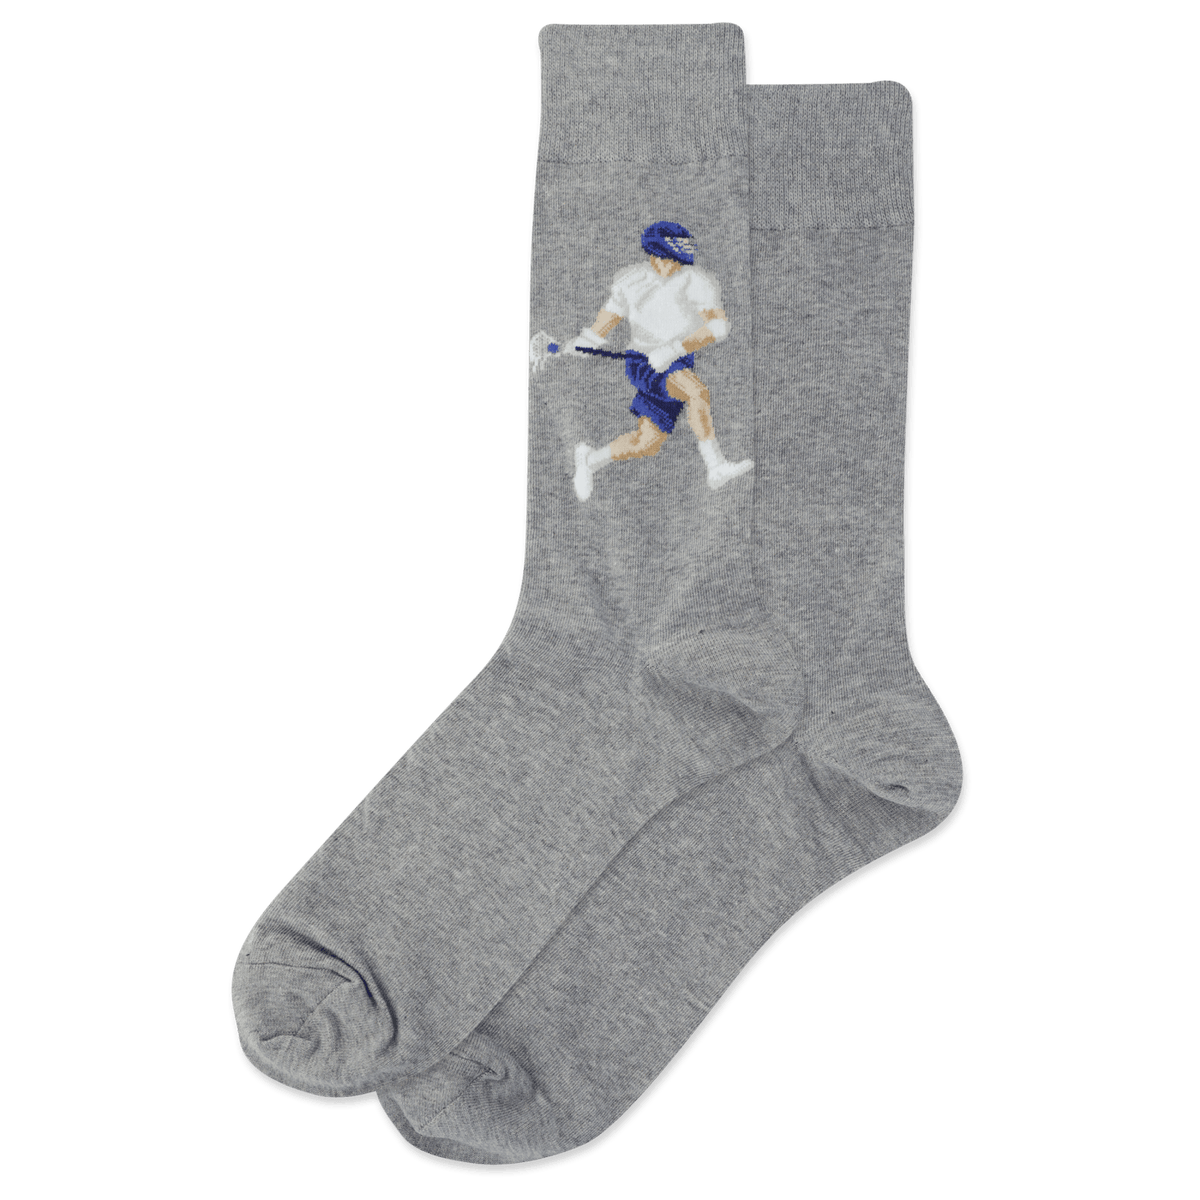 Lacrosse Player Socks Men's Crew Sock